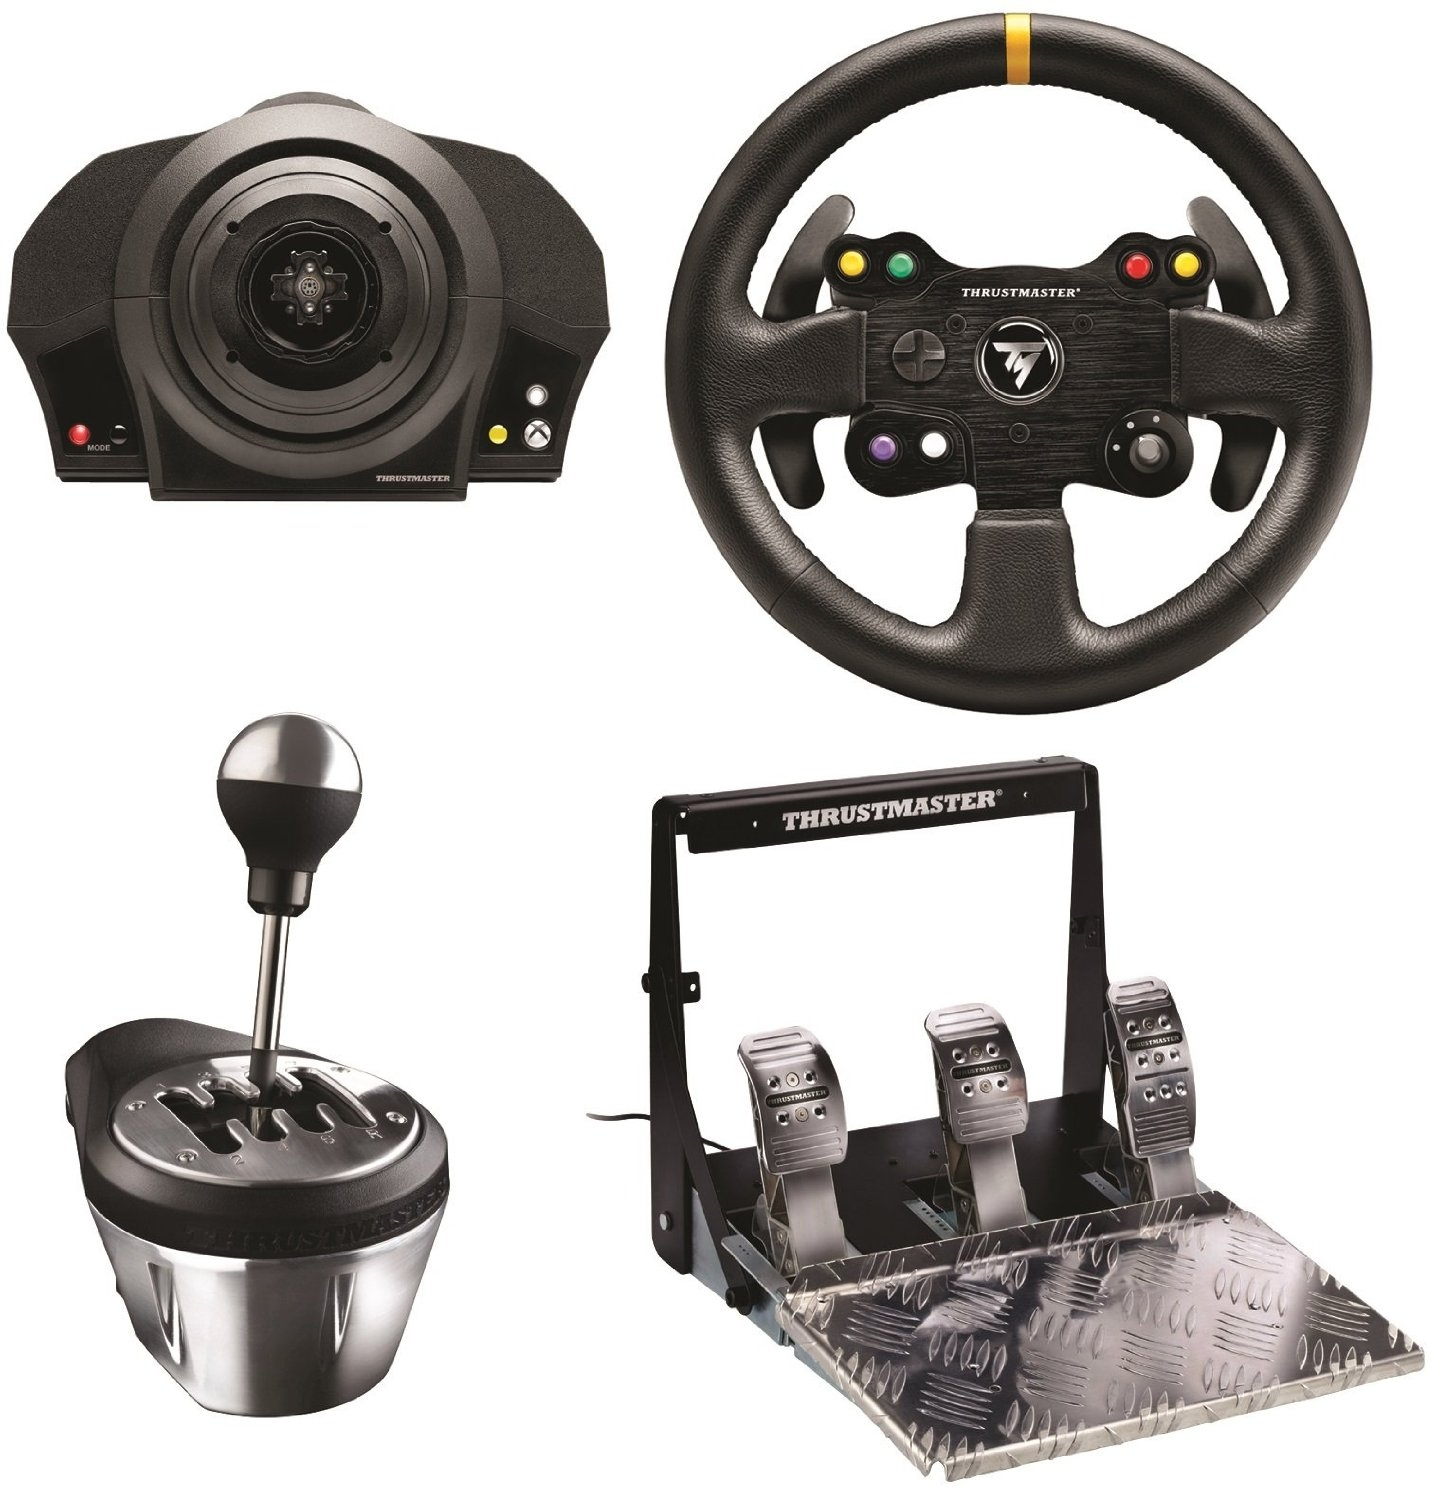 test du thrustmaster tx racing wheel leather edition sur xbox one et pc tous ses accessoires. Black Bedroom Furniture Sets. Home Design Ideas